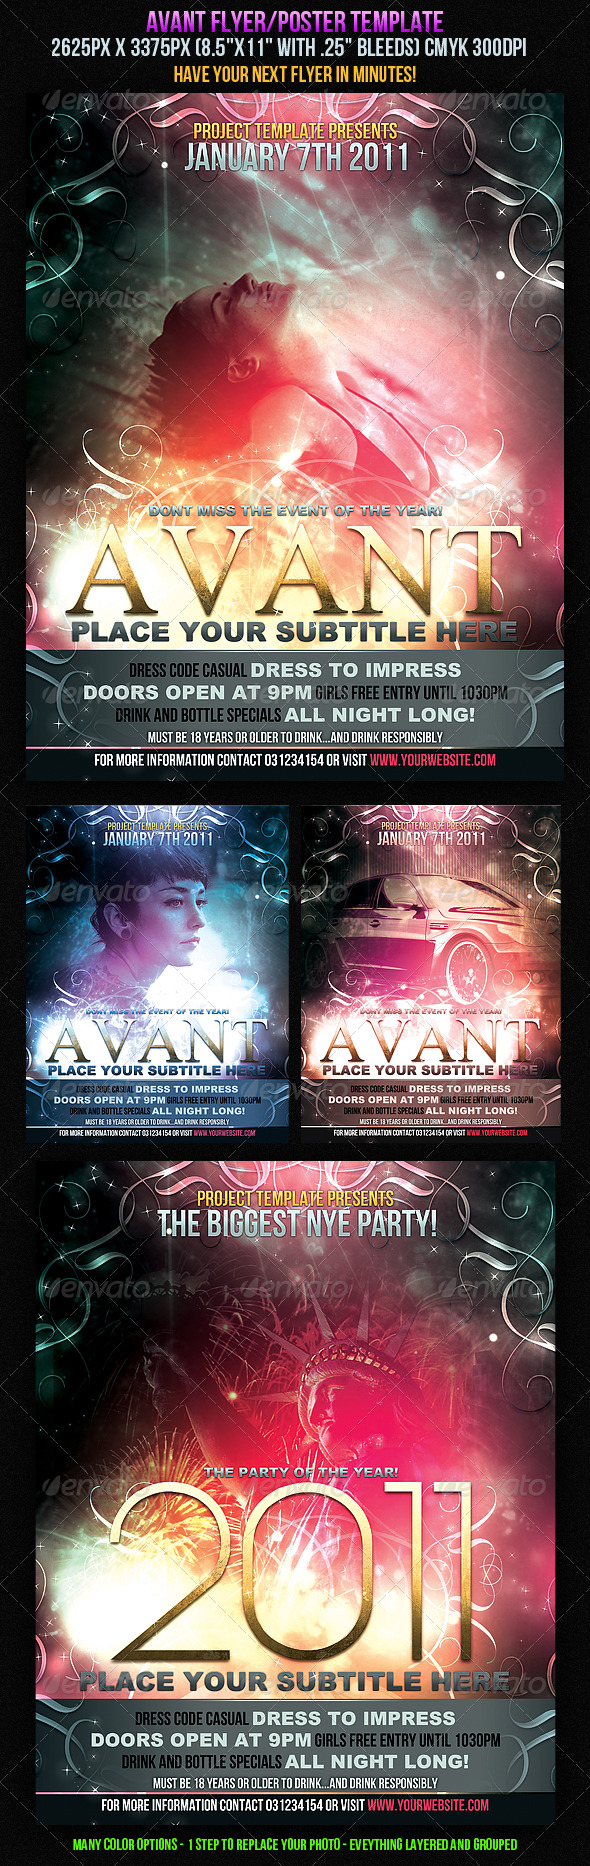 Avant Flyer/Poster Template. - Clubs & Parties Events